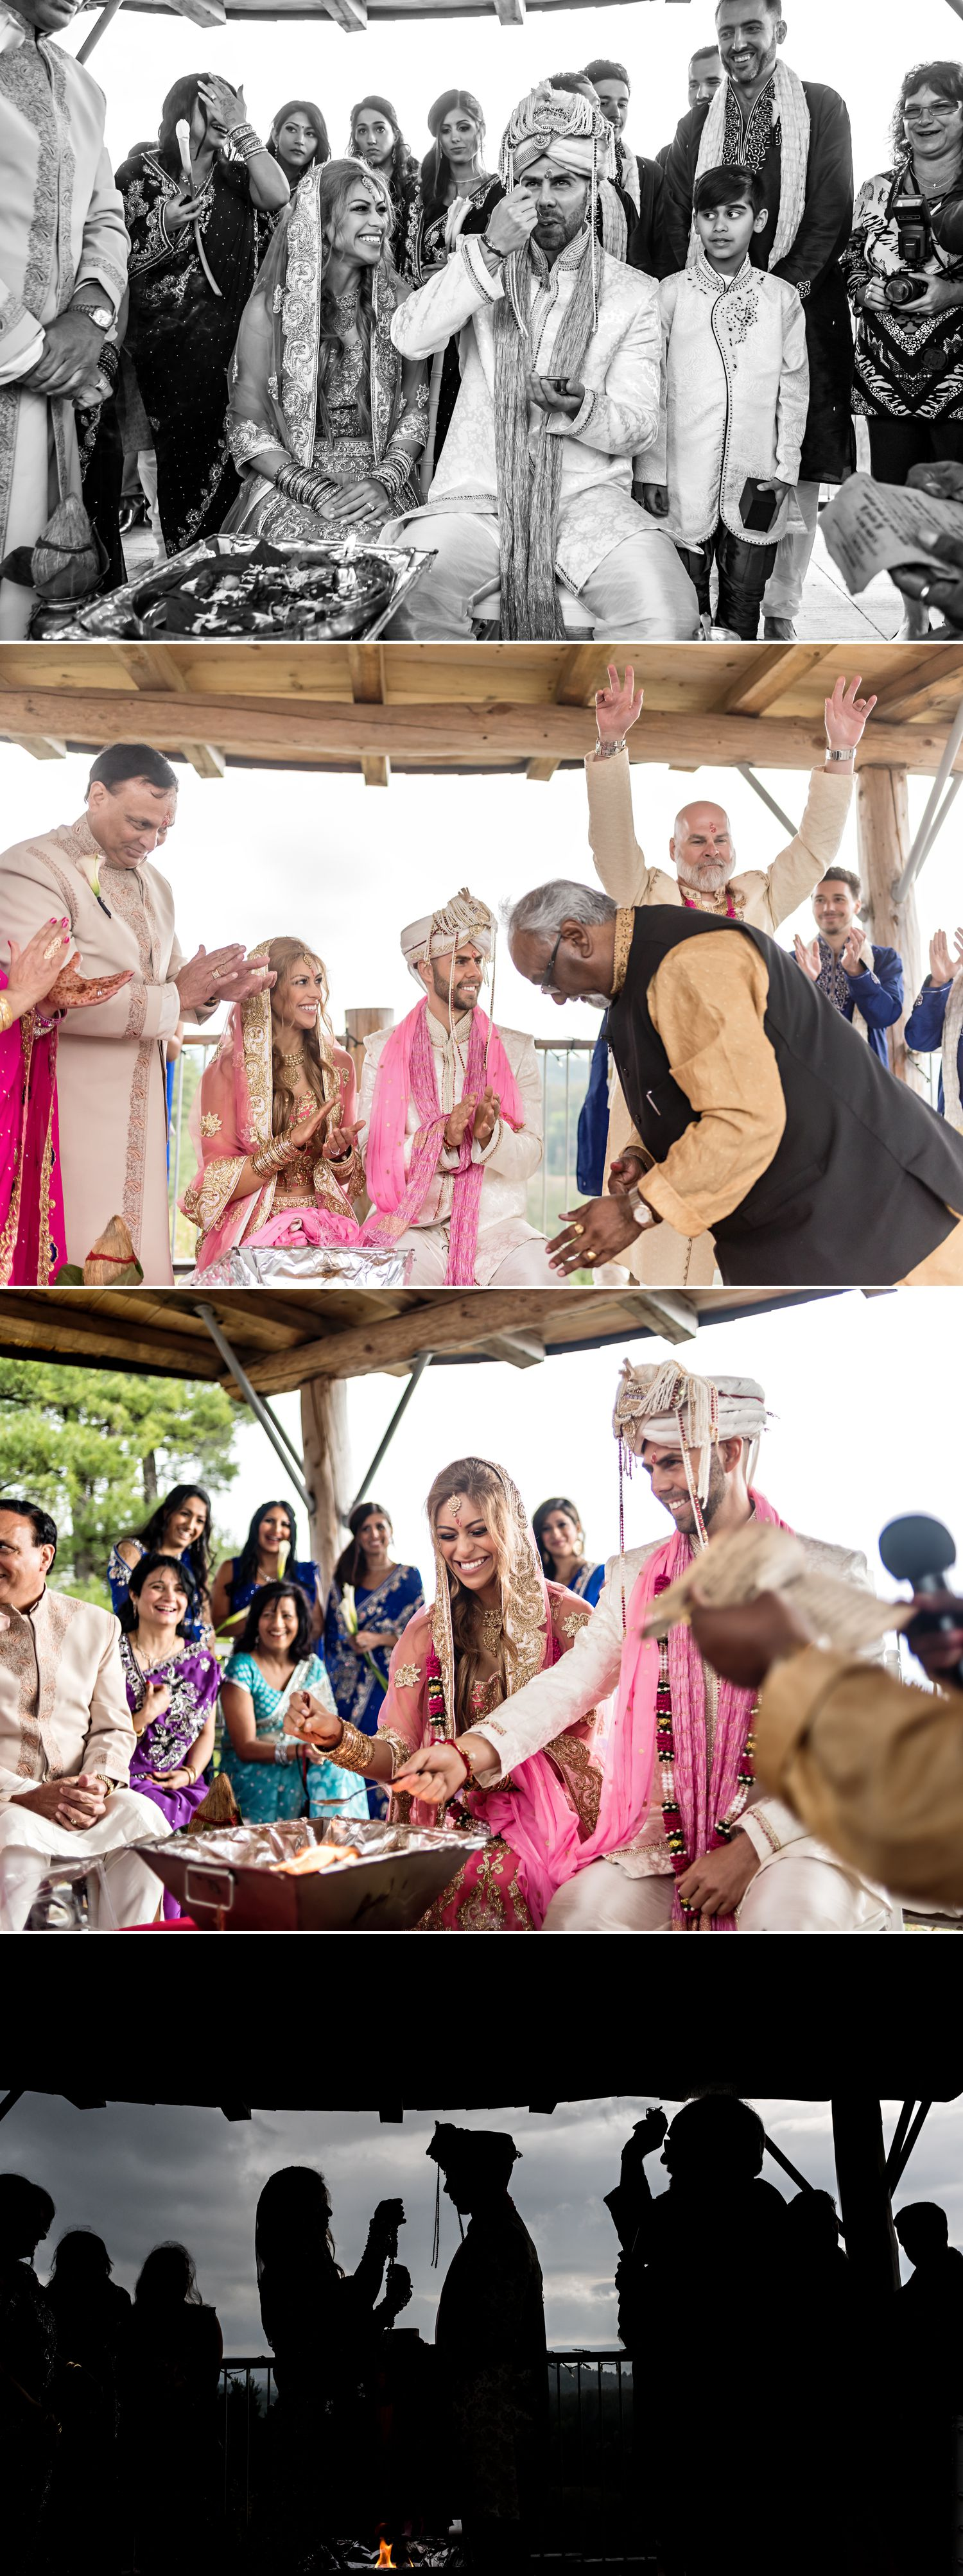 The bride and groom during their traditional Indian wedding ceremony